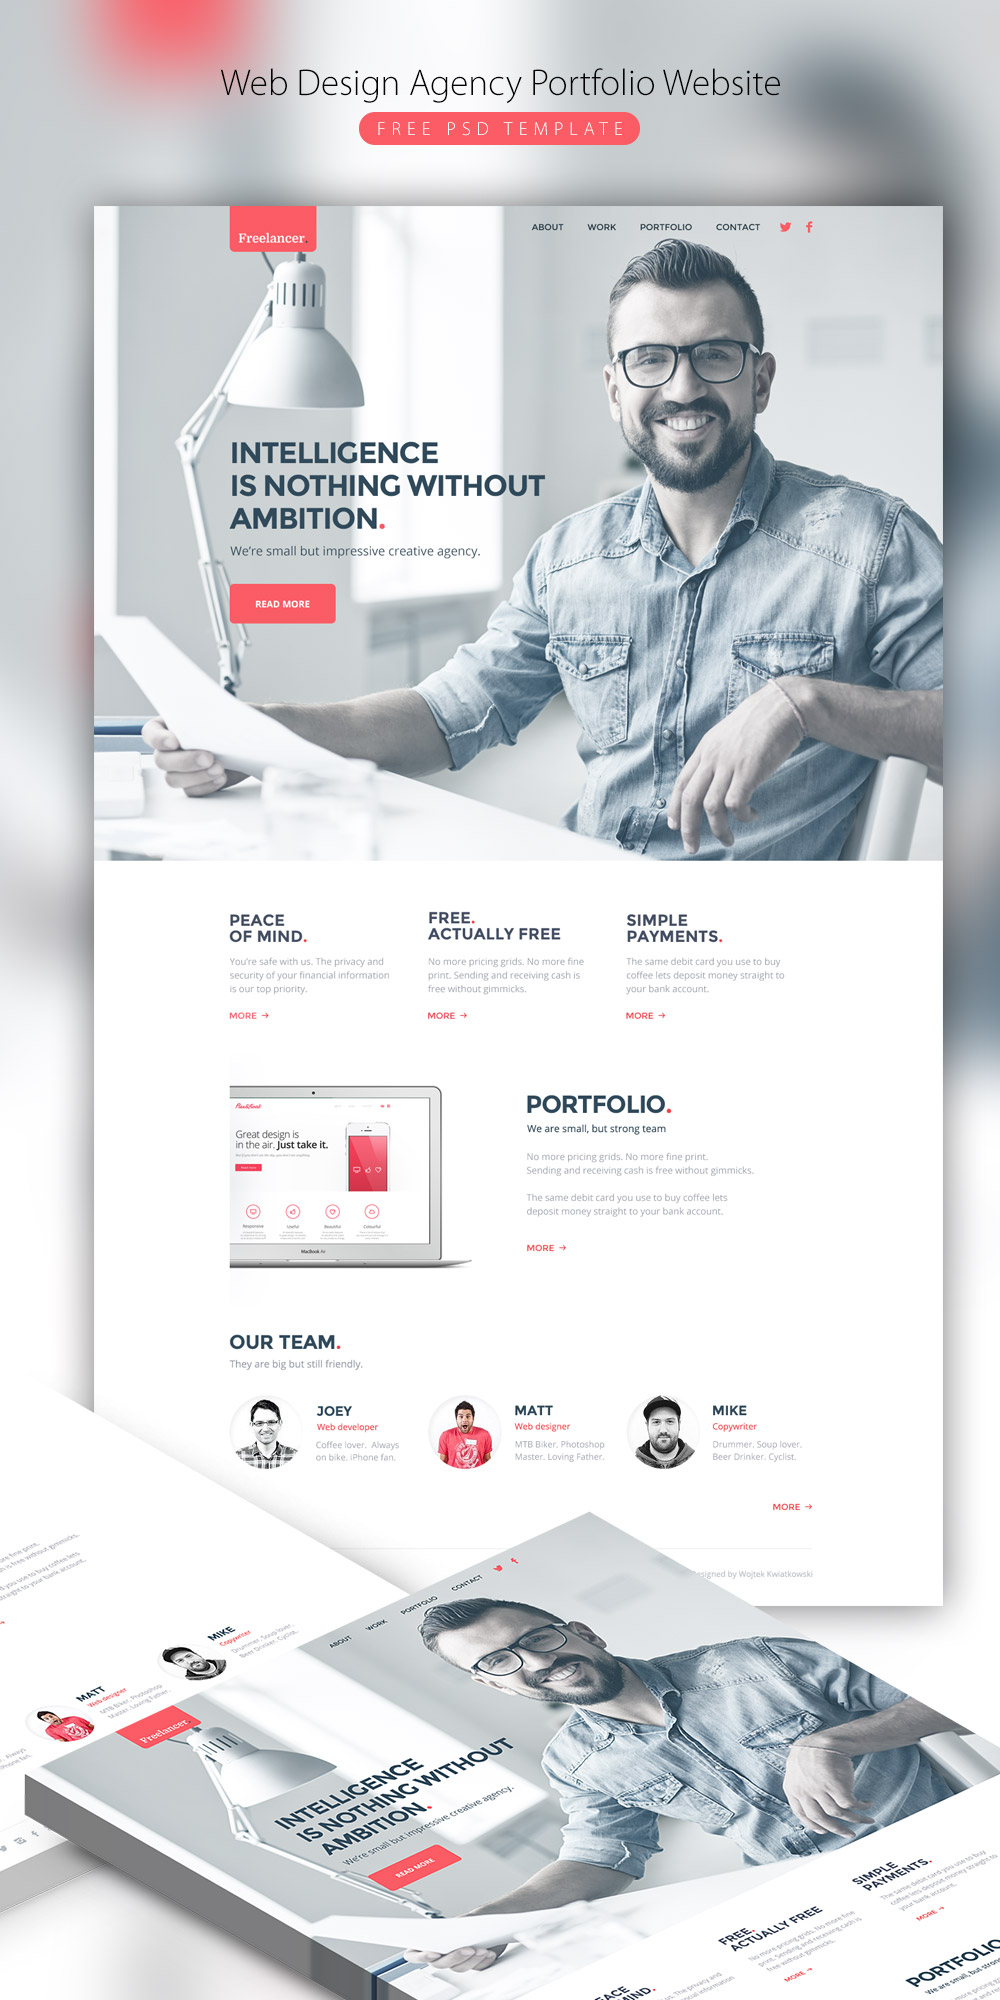 Web Design Agency Portfolio Website Free PSD Template